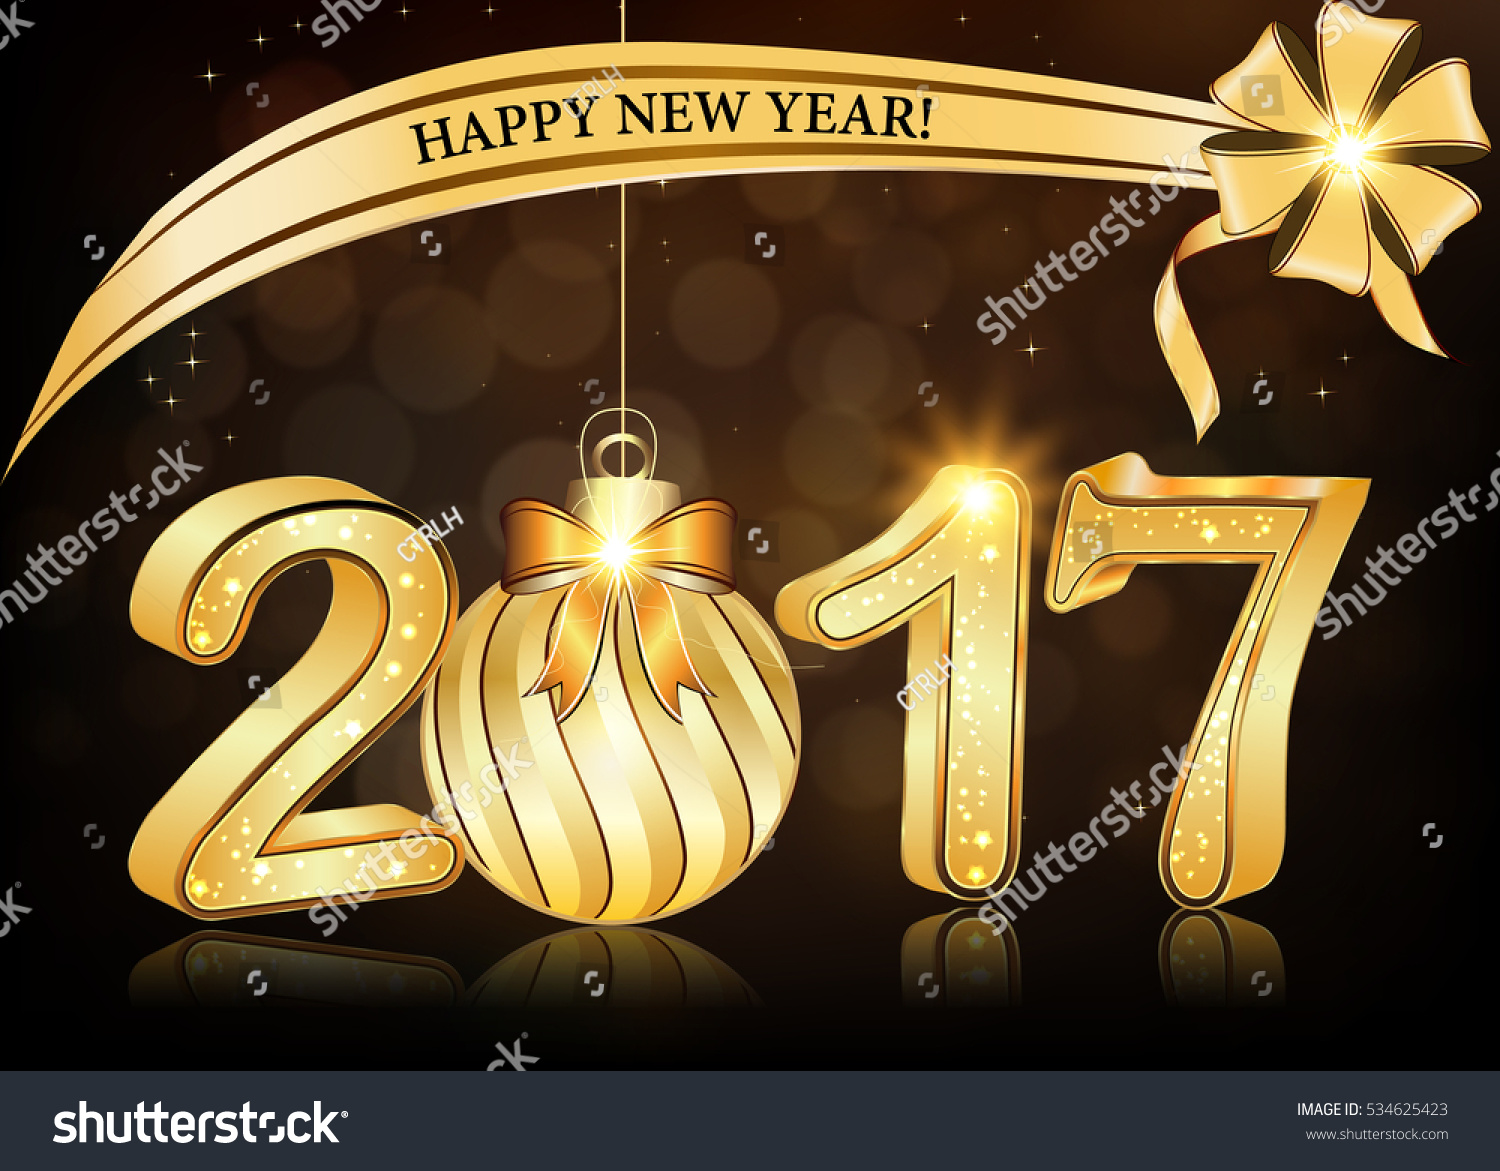 Elegant business happy new year 2017 stock illustration 534625423 elegant business happy new year 2017 background greeting card print colors used size magicingreecefo Gallery